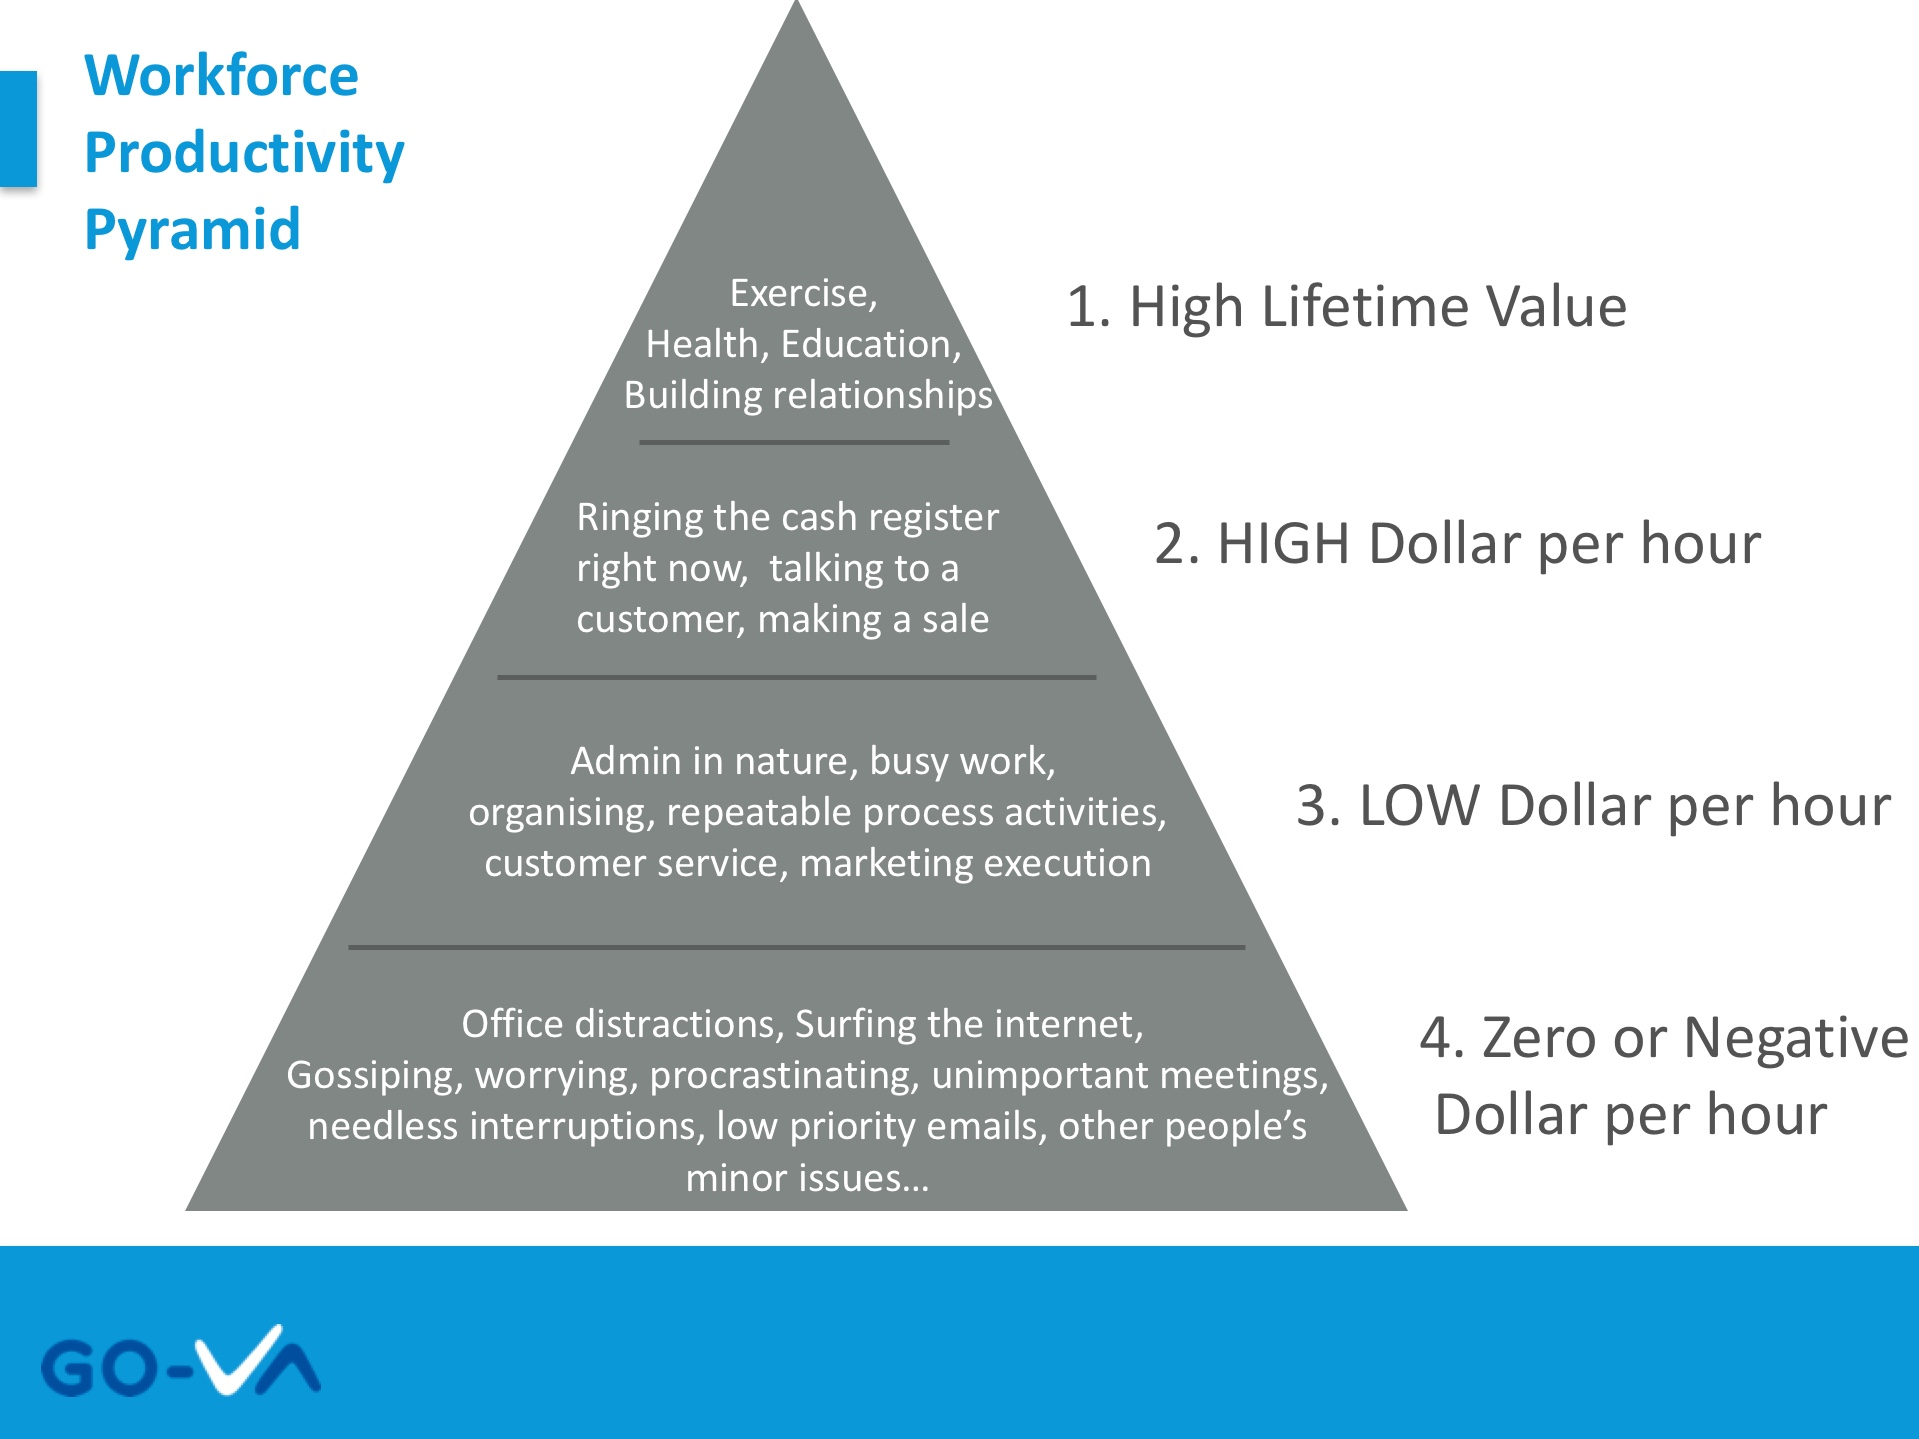 Workforce Productivity Pyramid